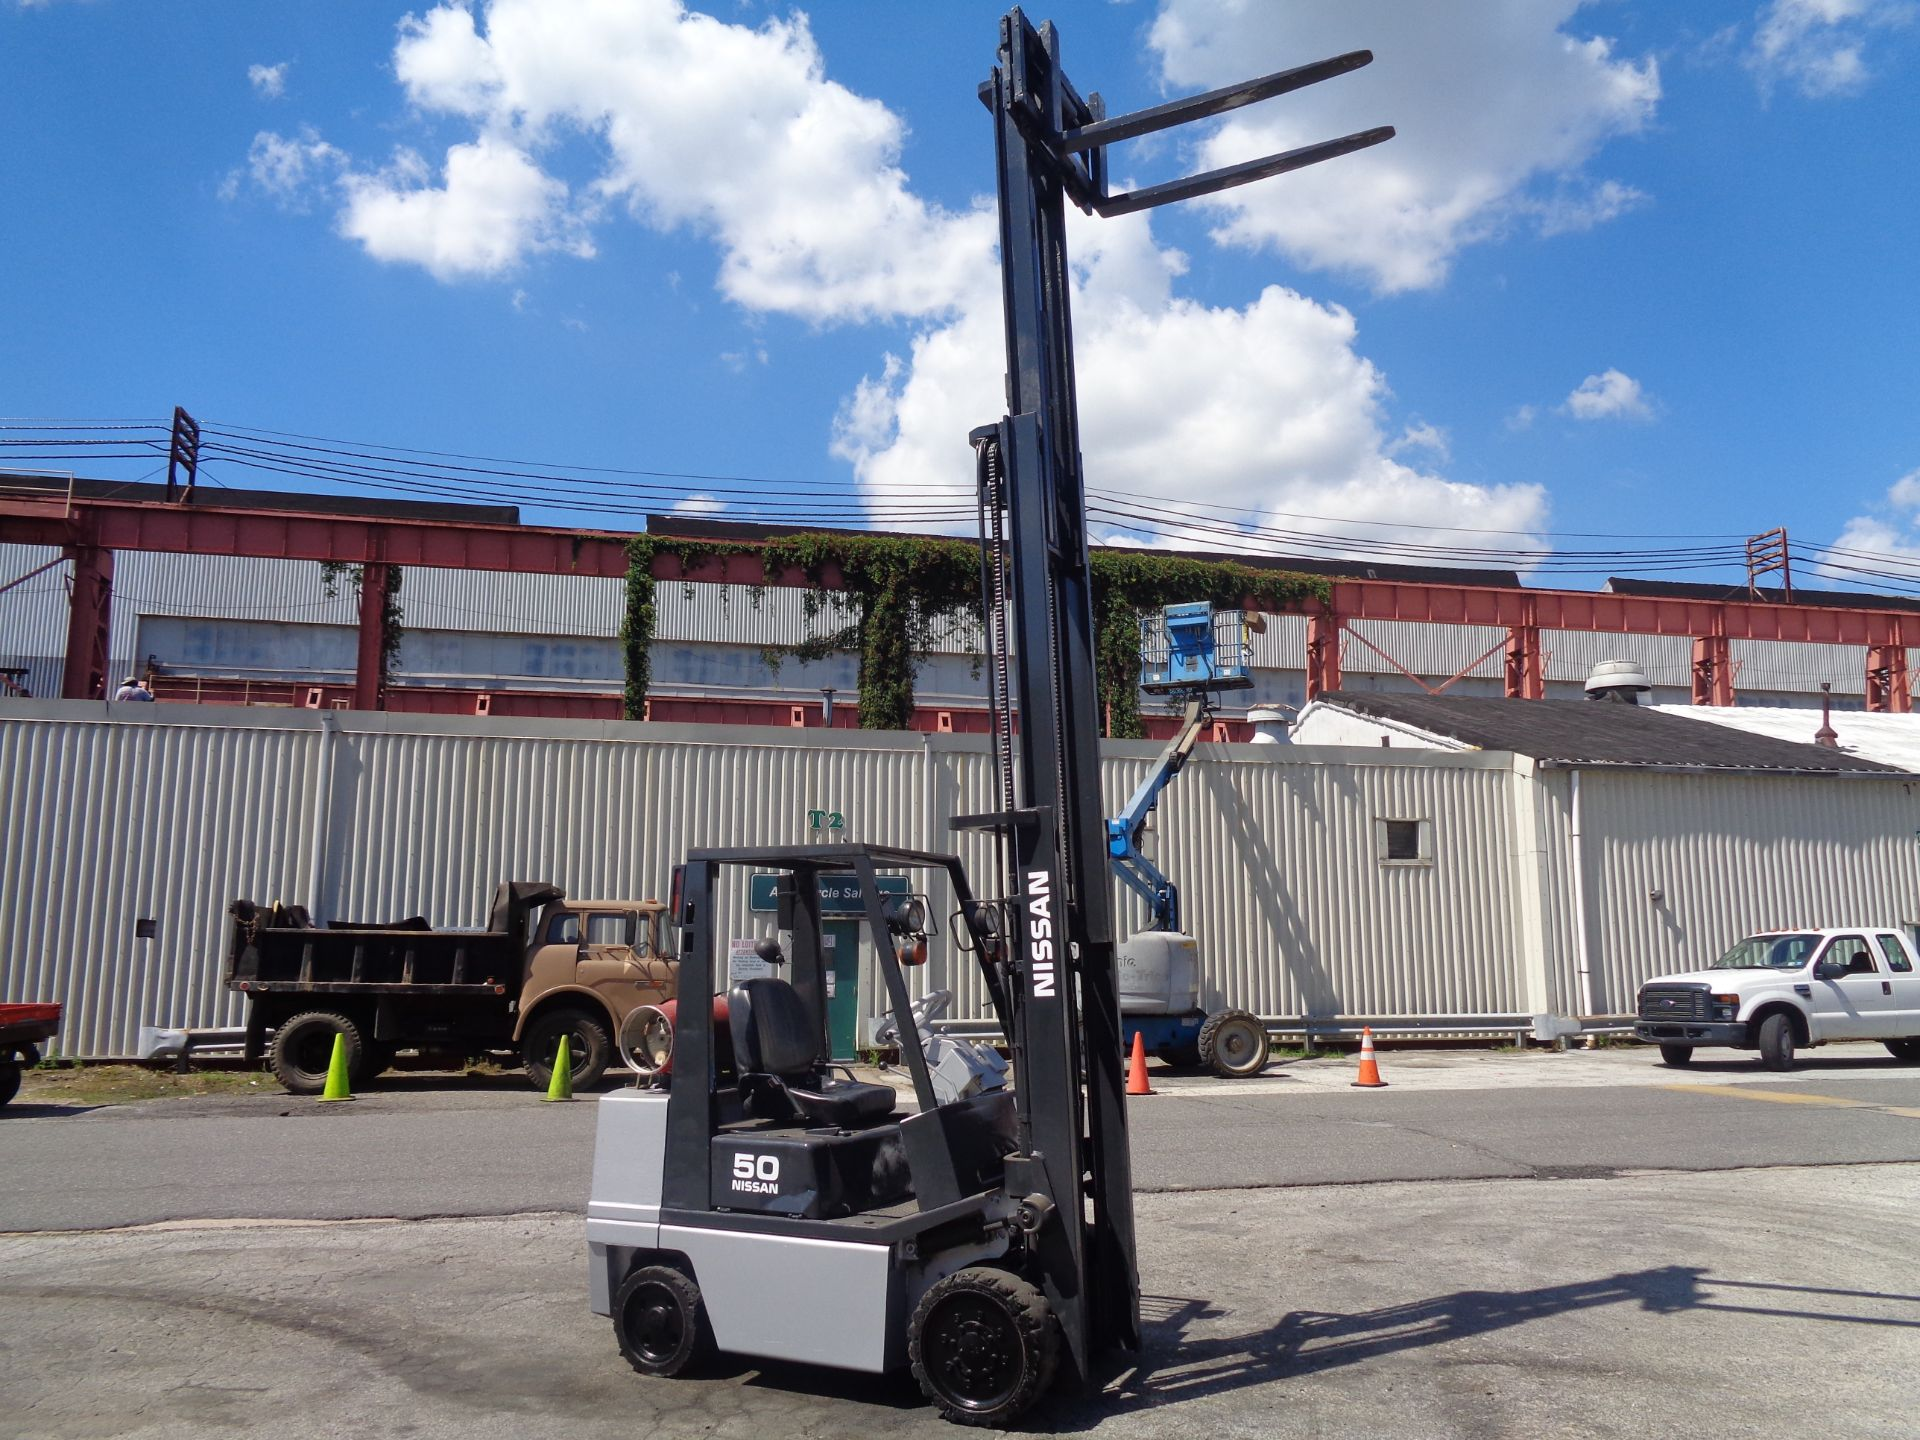 Nissan KCPH02A25PV 4,400 lb Forklift - Image 14 of 17